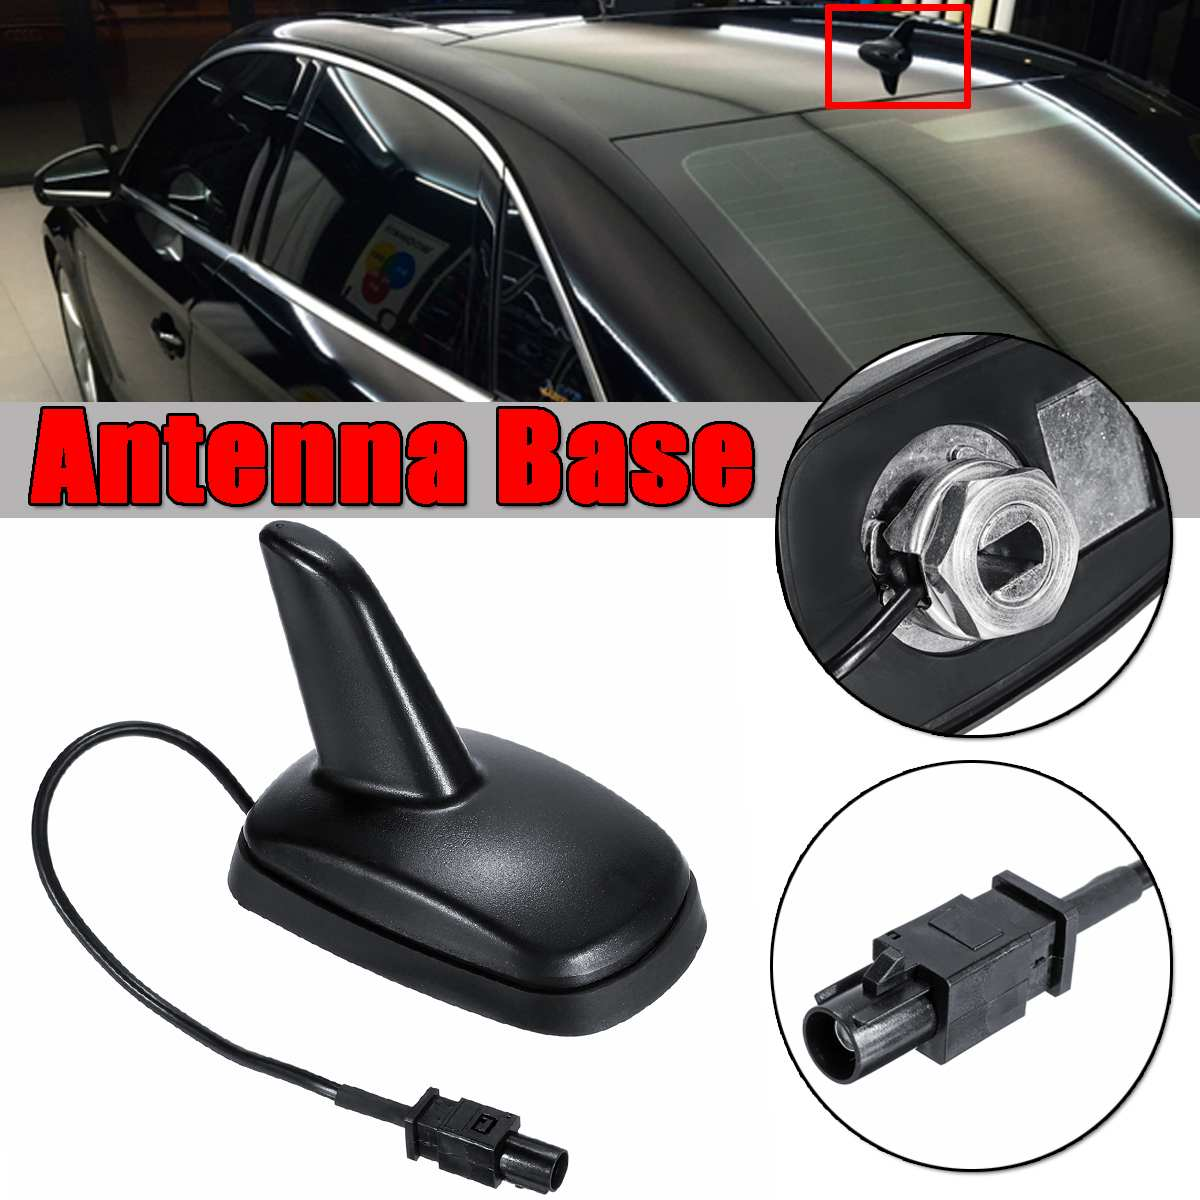 28cm Vauxhall Corsa /& Combo Van Roof Mount Replacement Car Aerial Antenna Black